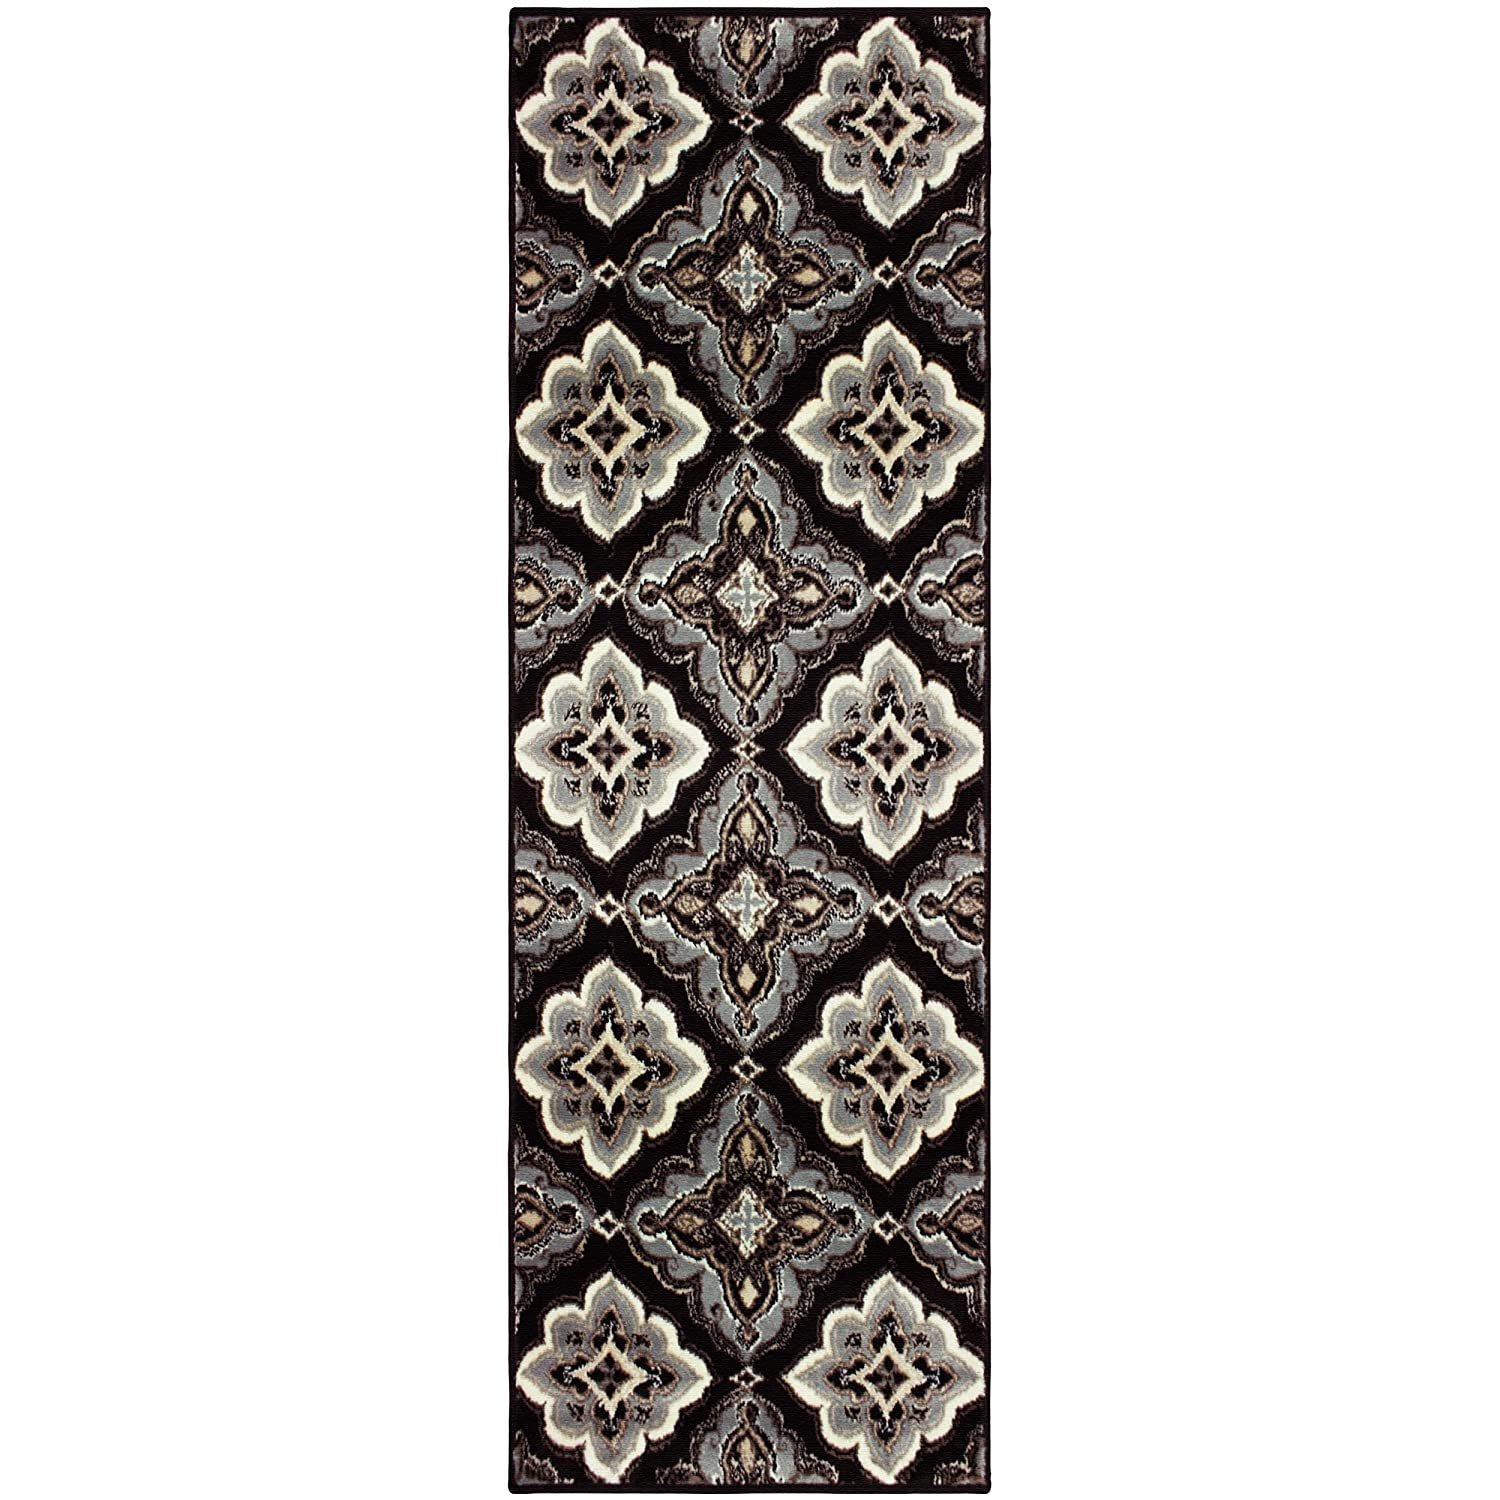 """Superior Crawford Collection Area Rug, 8mm Pile Height with Jute Backing, Gorgeous Mediterranean Tile Pattern, Fashionable and Affordable Woven Rugs - 2'7"""" x 8' Runner, Black"""